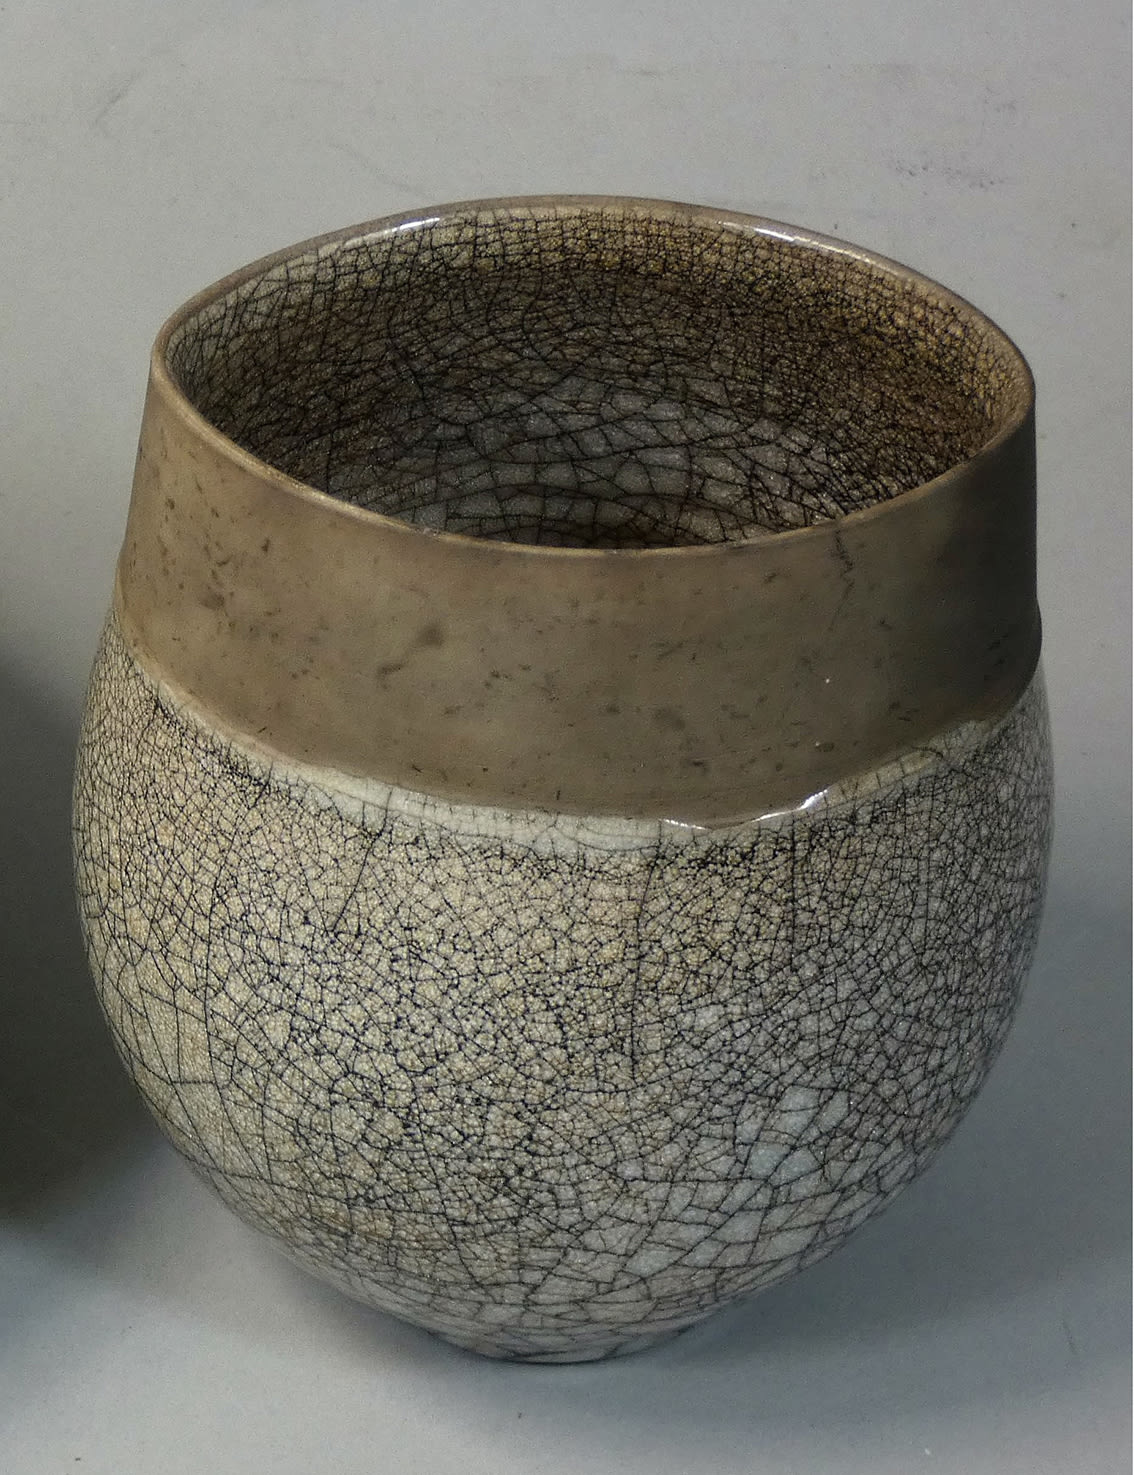 "<span class=""link fancybox-details-link""><a href=""/artists/98-tim-andrews/works/7141-tim-andrews-ovoid-vase/"">View Detail Page</a></span><div class=""artist""><strong>Tim Andrews</strong></div> b. 1960 <div class=""title""><em>Ovoid Vase</em></div> <div class=""signed_and_dated"">impressed monogram 'TA'</div> <div class=""medium"">Raku with 'crackle glaze'</div> <div class=""dimensions"">h. 12 cm<br /> 4 3/4 in.</div><div class=""price"">£180.00</div><div class=""copyright_line"">Own Art: £18 x 10 months 0% APR</div>"